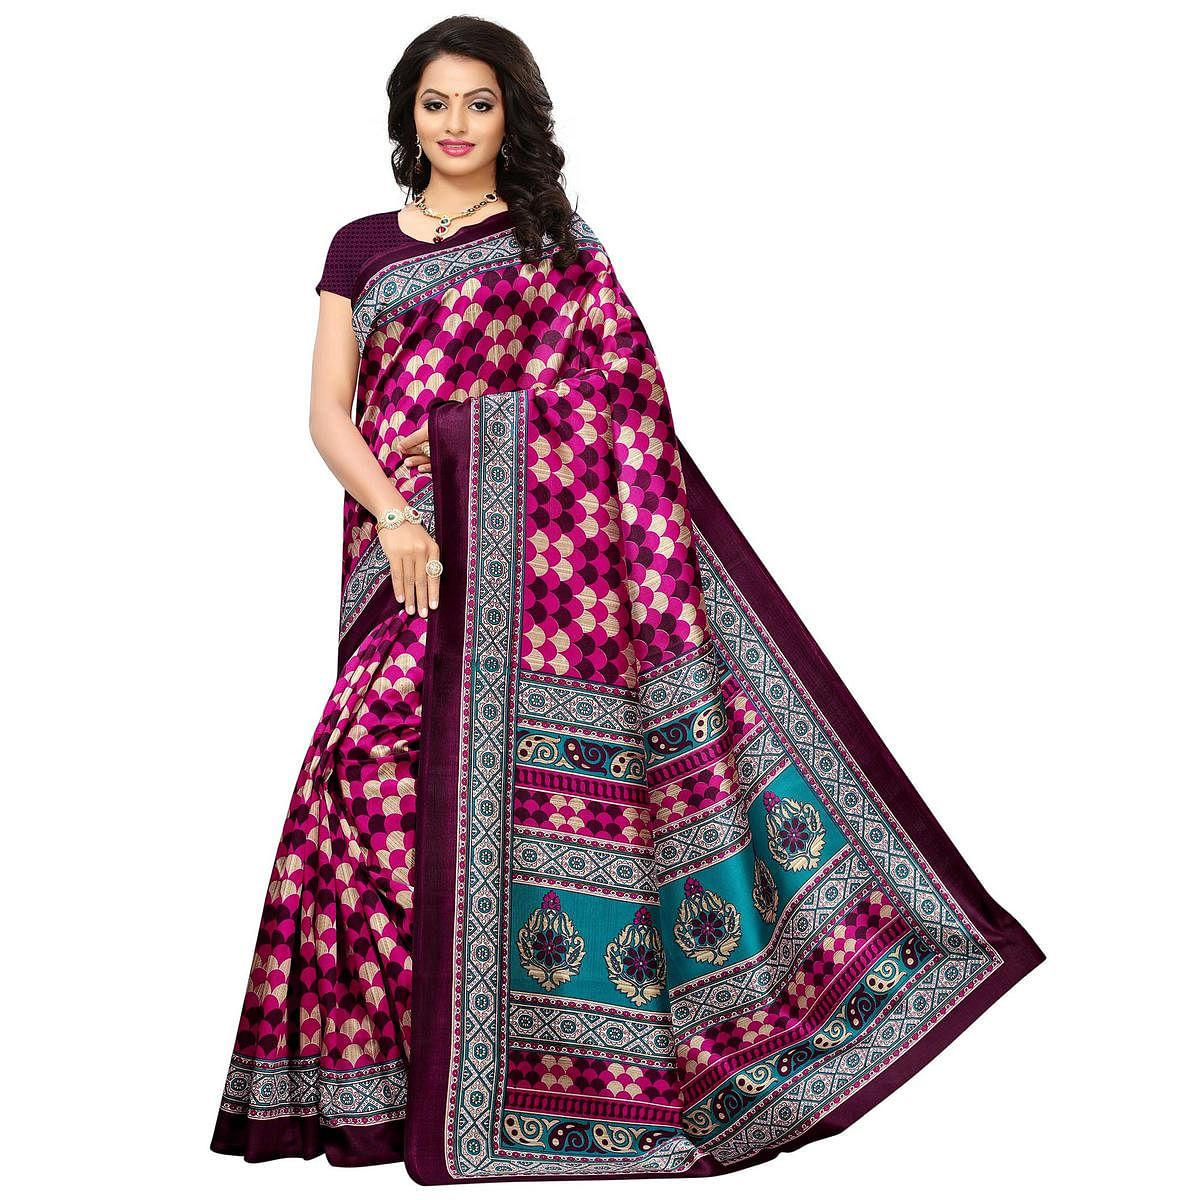 Charming Pink-Purple Colored Printed Festive Wear Mysore Art Silk Saree